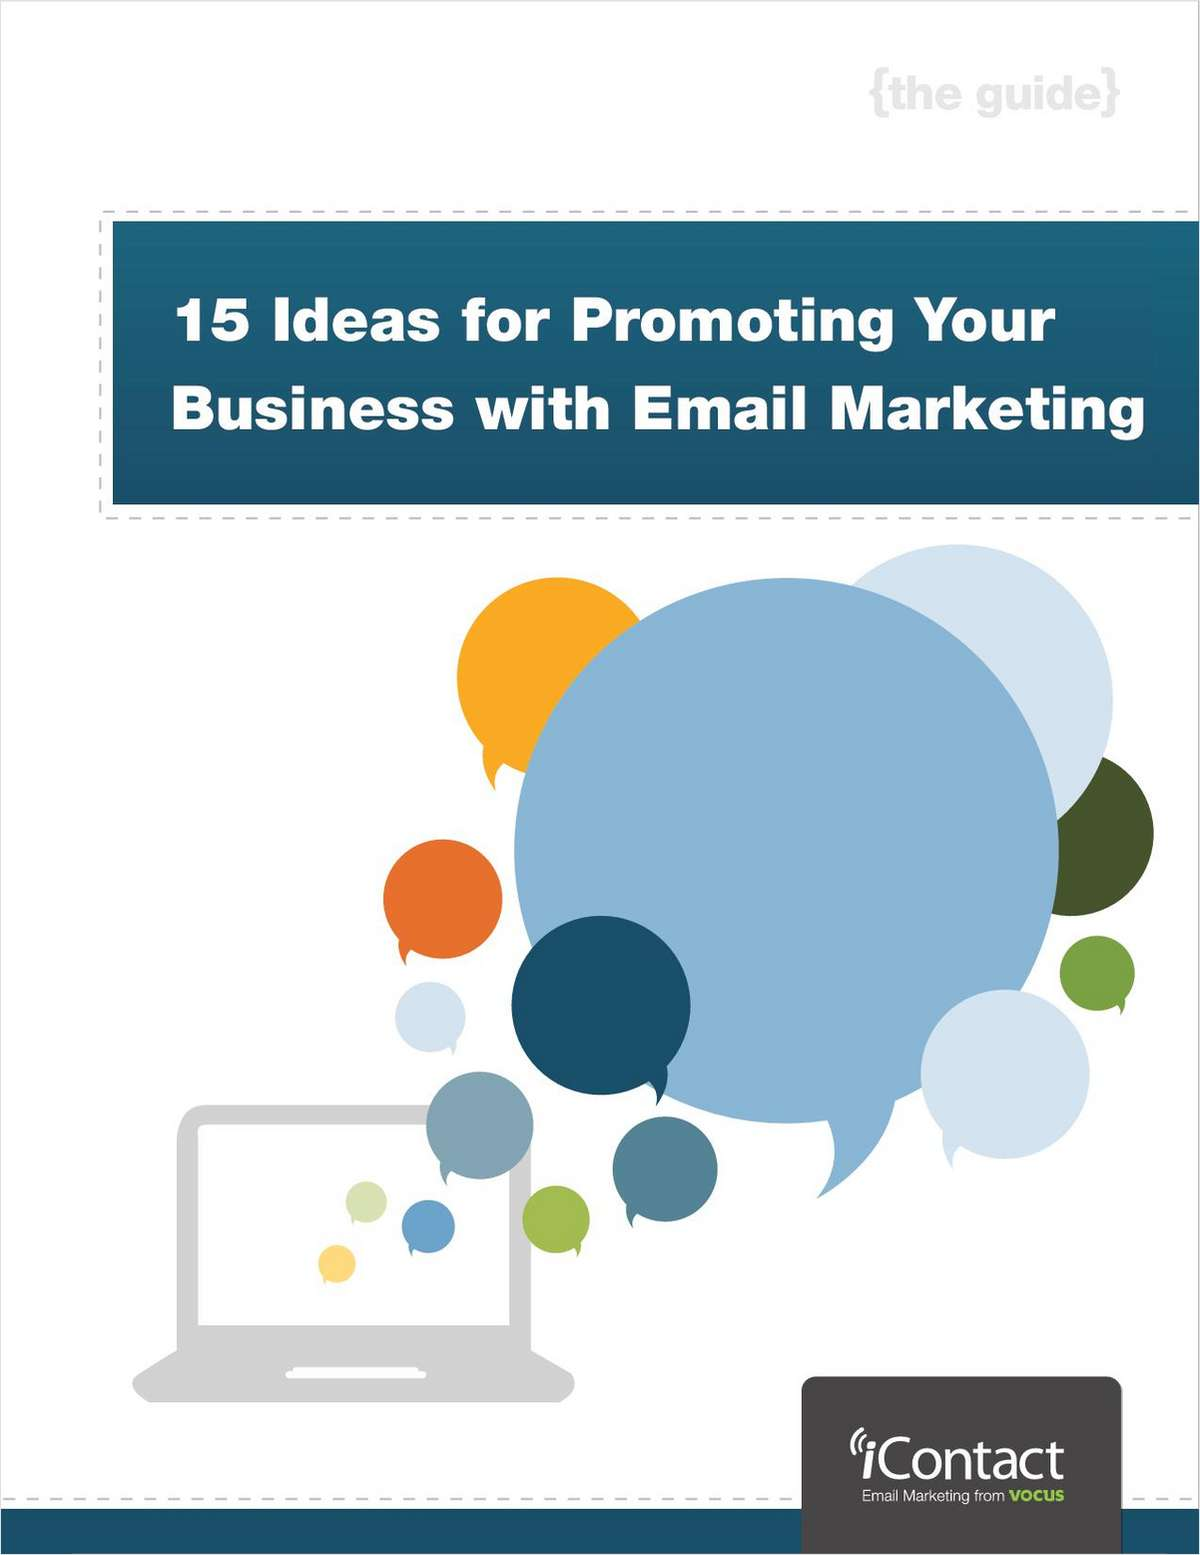 15 Ideas for Promoting Your Business Online, Free Vocus, Inc. Guide